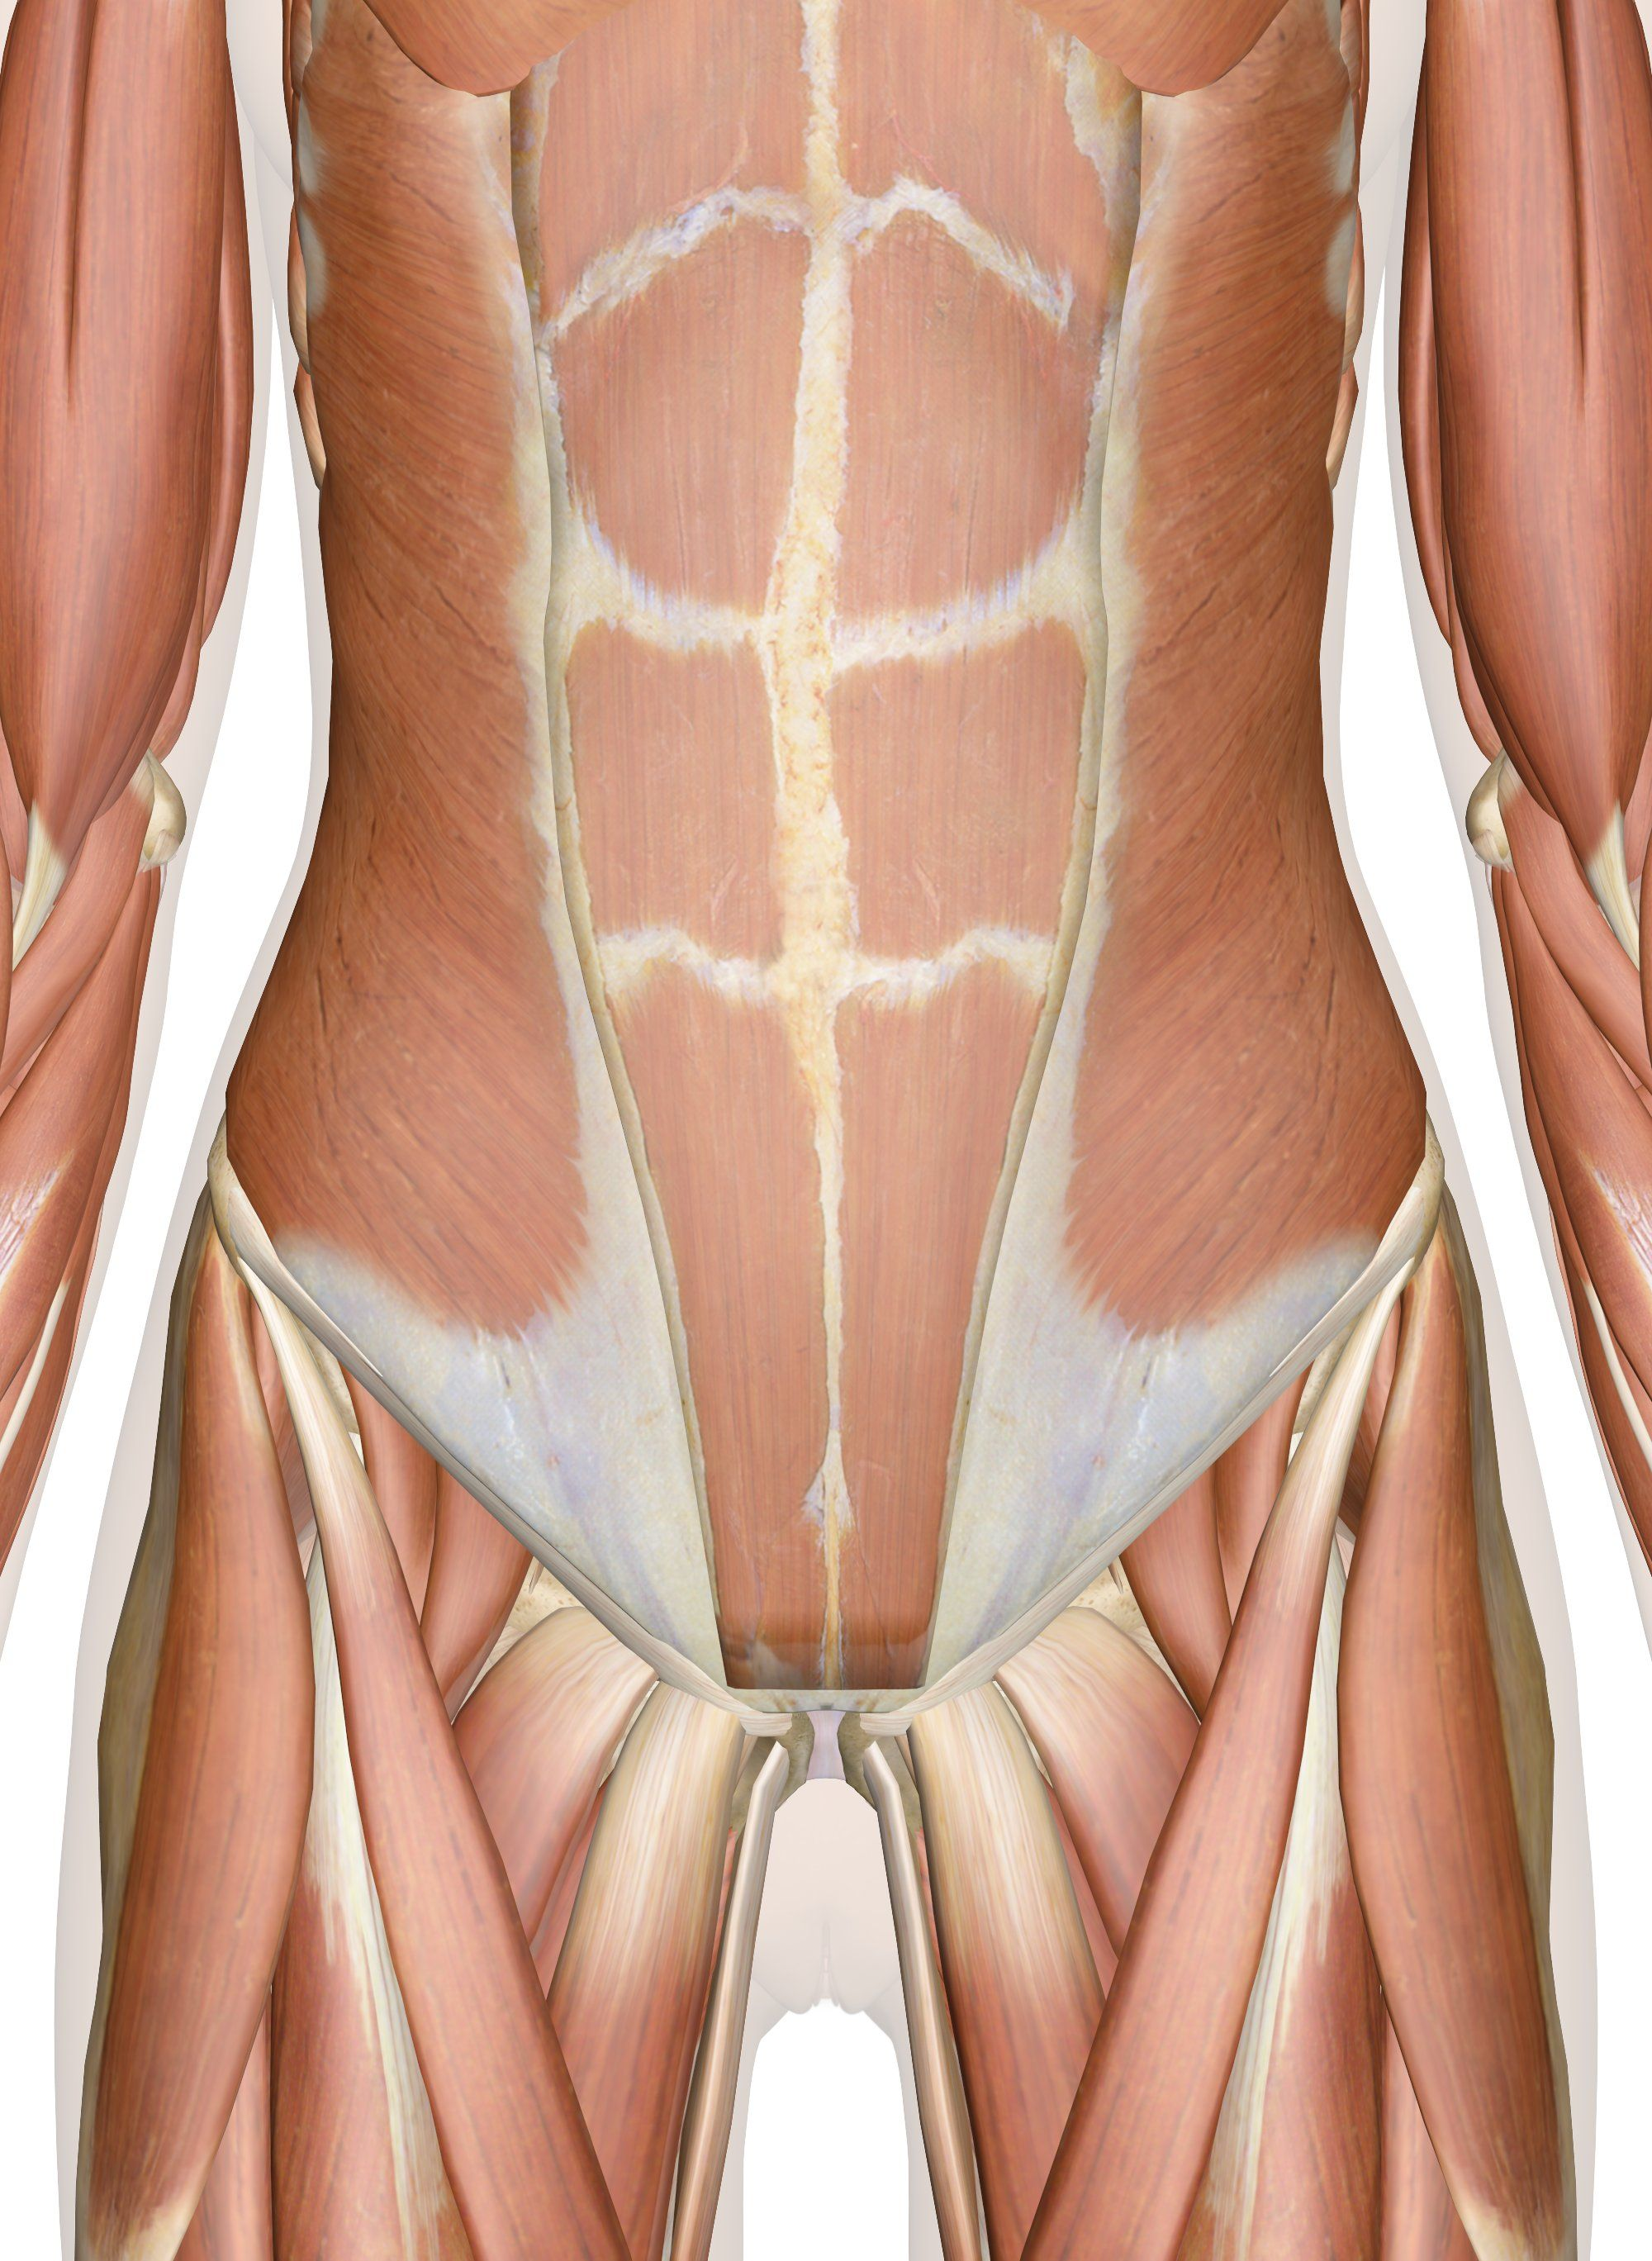 Muscles Of The Abdomen Lower Back And Pelvis Health And Fitness